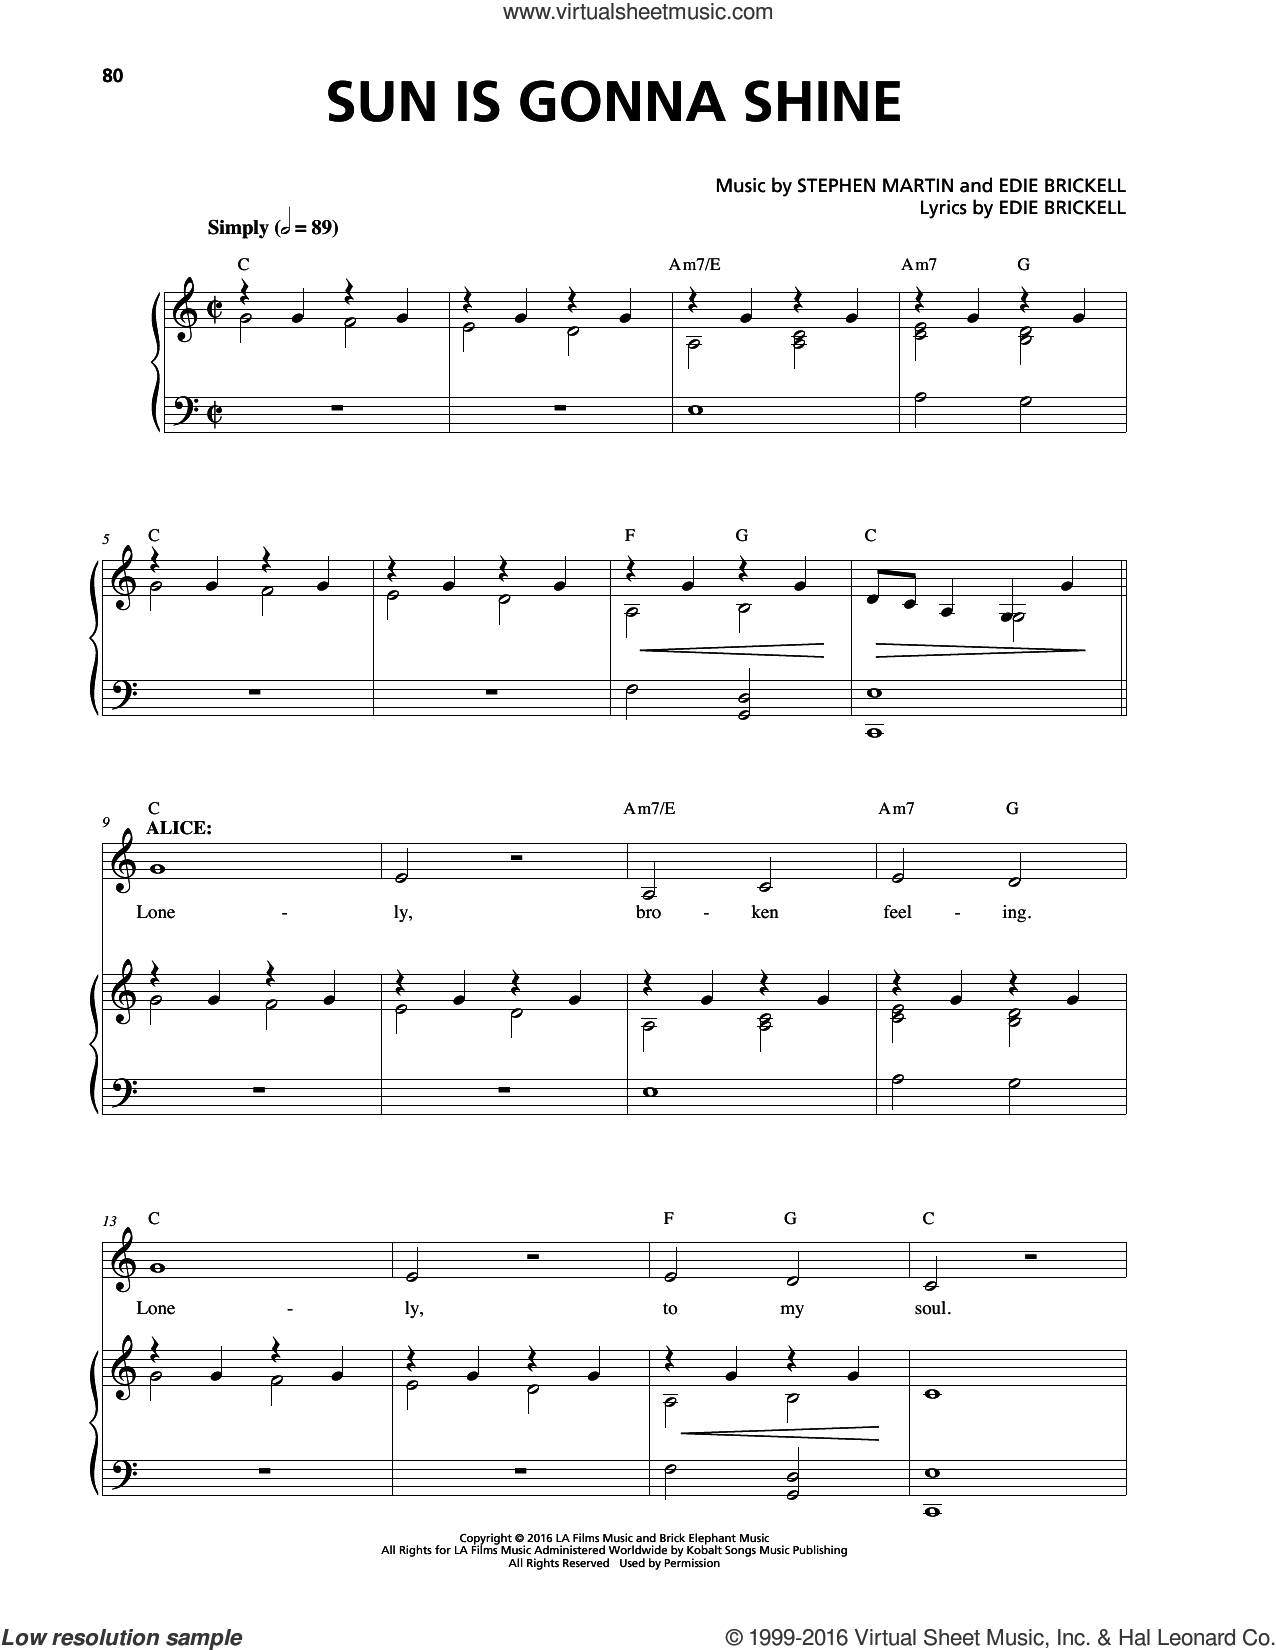 Sun Is Gonna Shine sheet music for voice and piano by Stephen Martin. Score Image Preview.